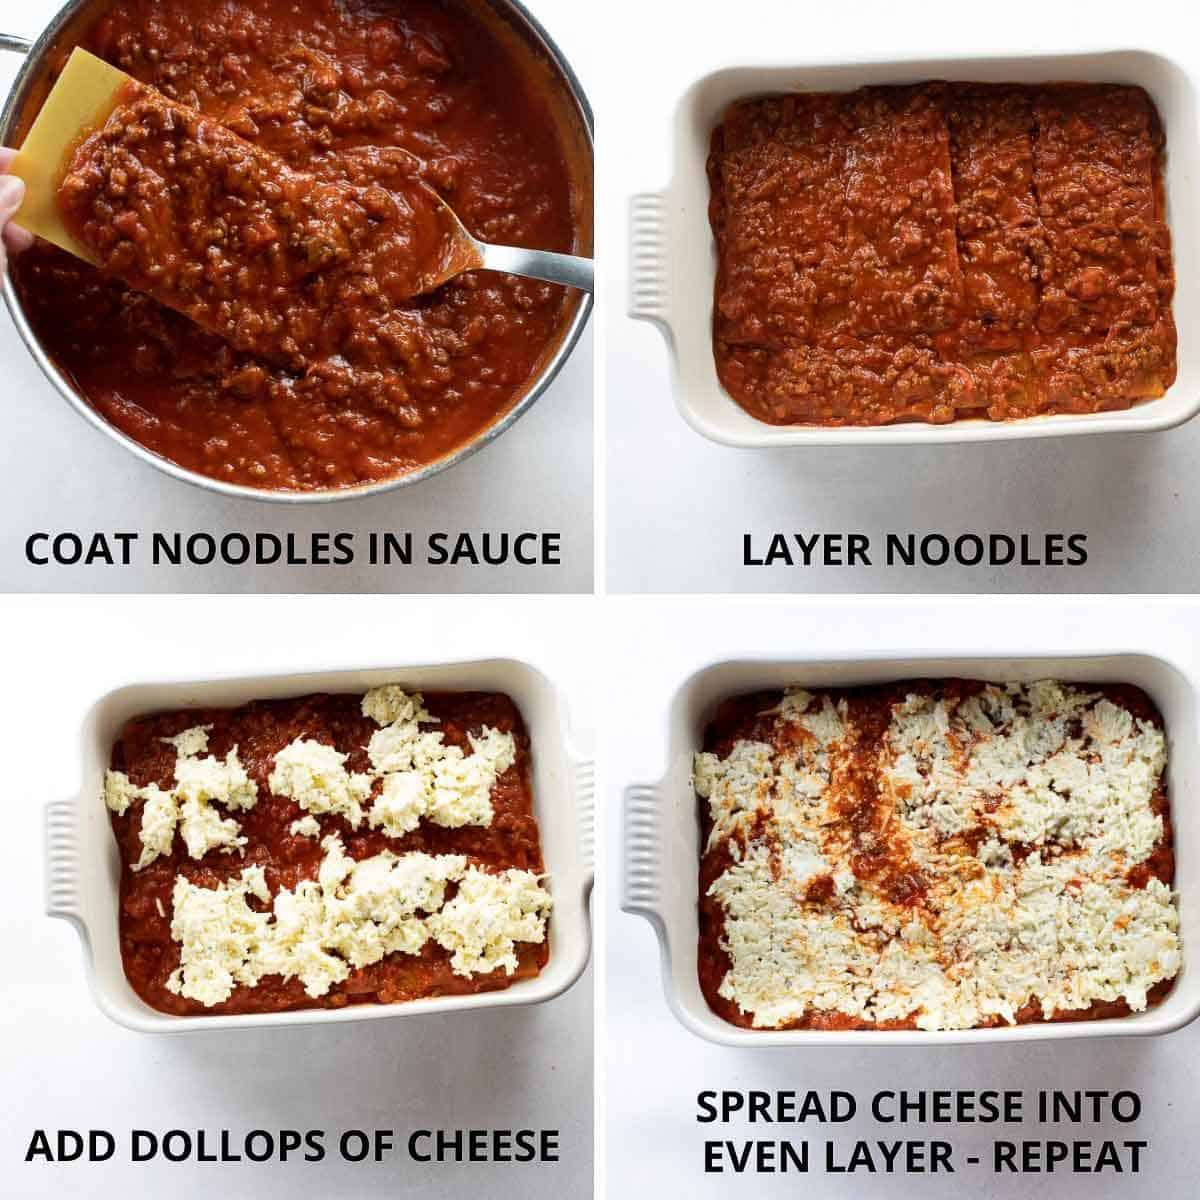 steps for how to assemble the gluten free lasagna